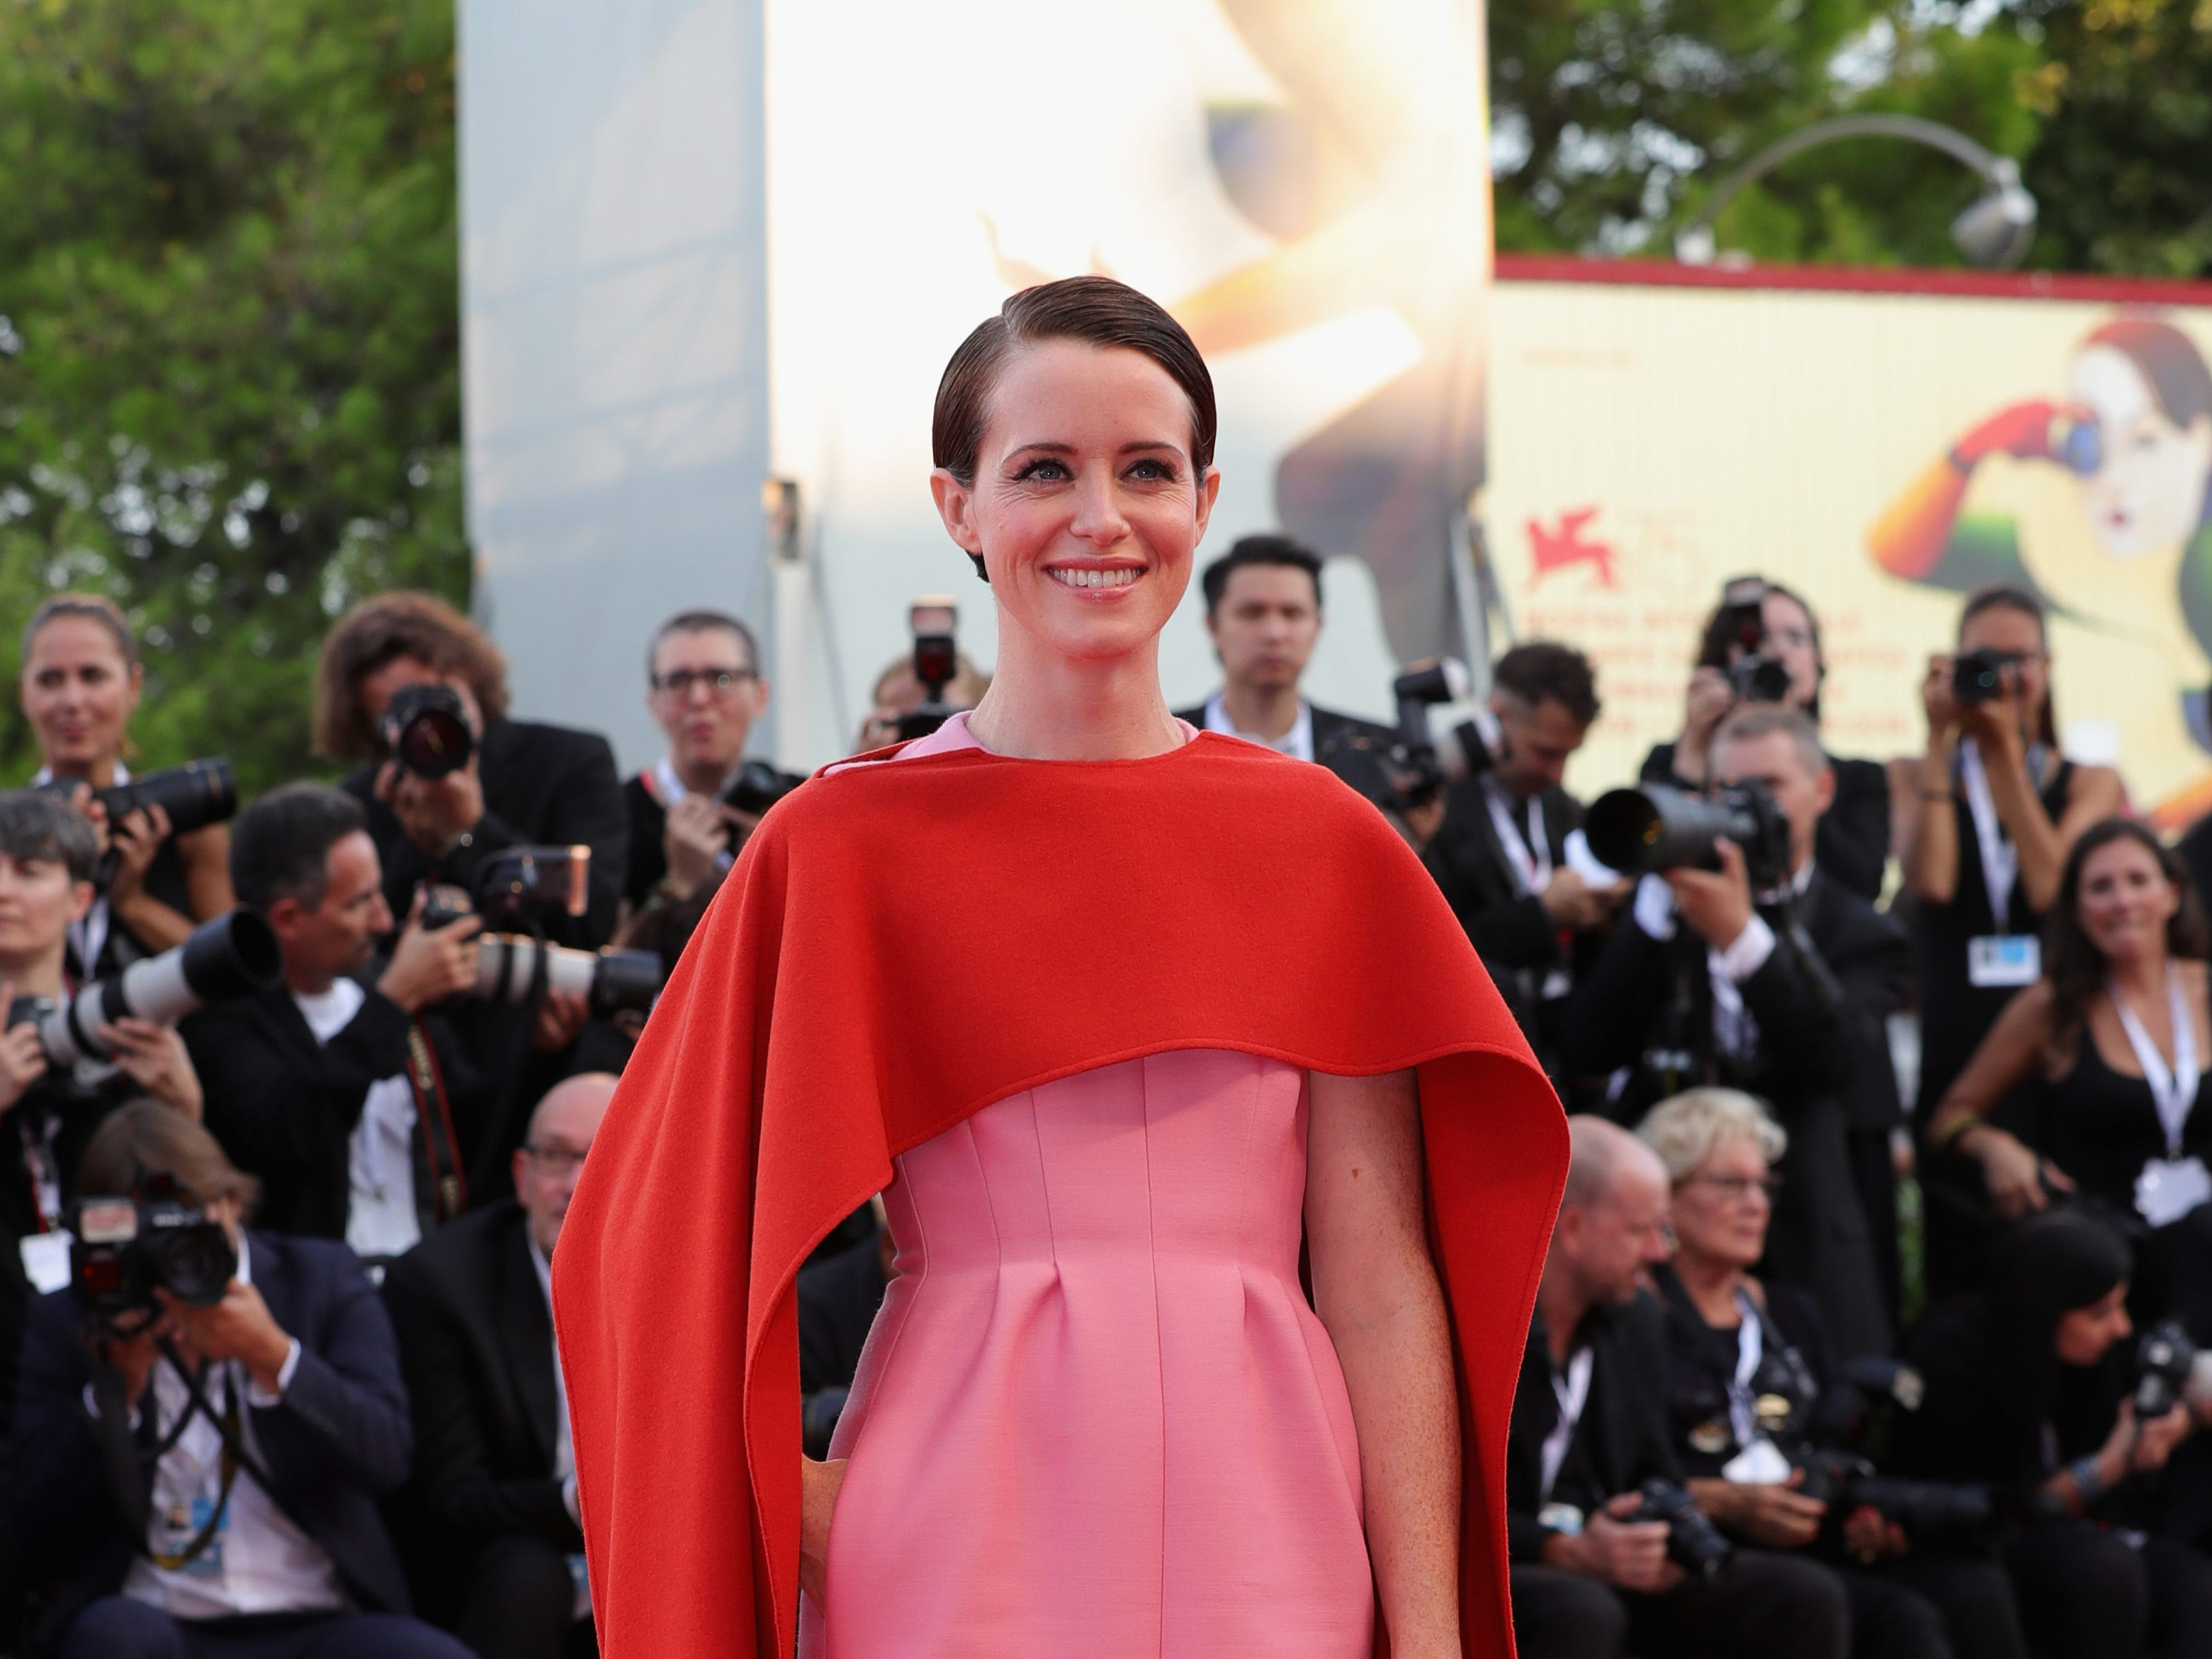 VENICE, ITALY - AUGUST 29:  Claire Foy walks the red carpet ahead of the opening ceremony and the 'First Man' screening during the 75th Venice Film Festival at Sala Grande on August 29, 2018 in Venice, Italy.  (Photo by Vittorio Zunino Celotto/Getty Images) ORG XMIT: 775200608 ORIG FILE ID: 1025048488